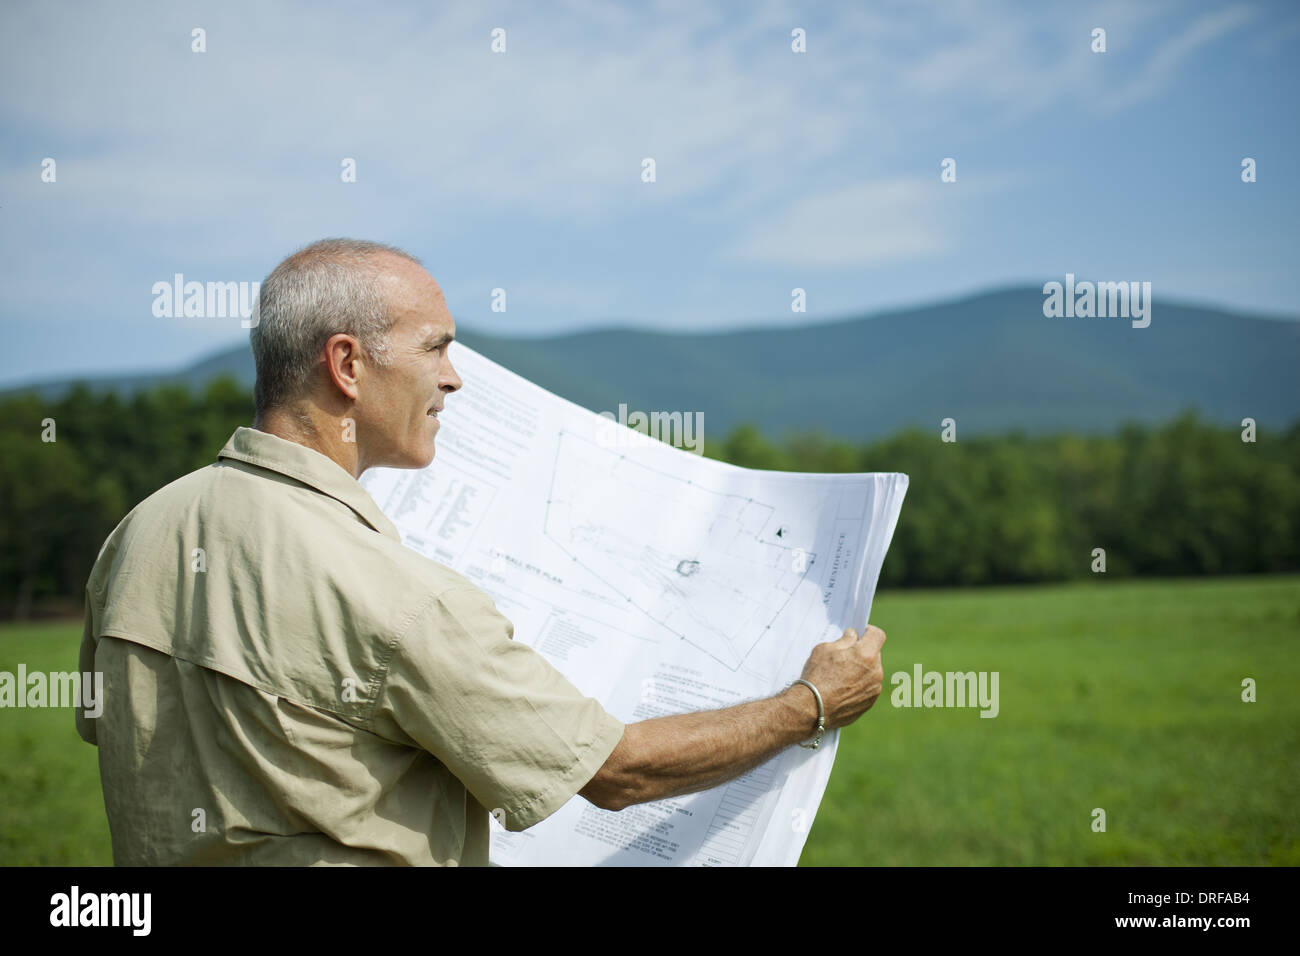 New York state USA rural person holding scale model of new building - Stock Image